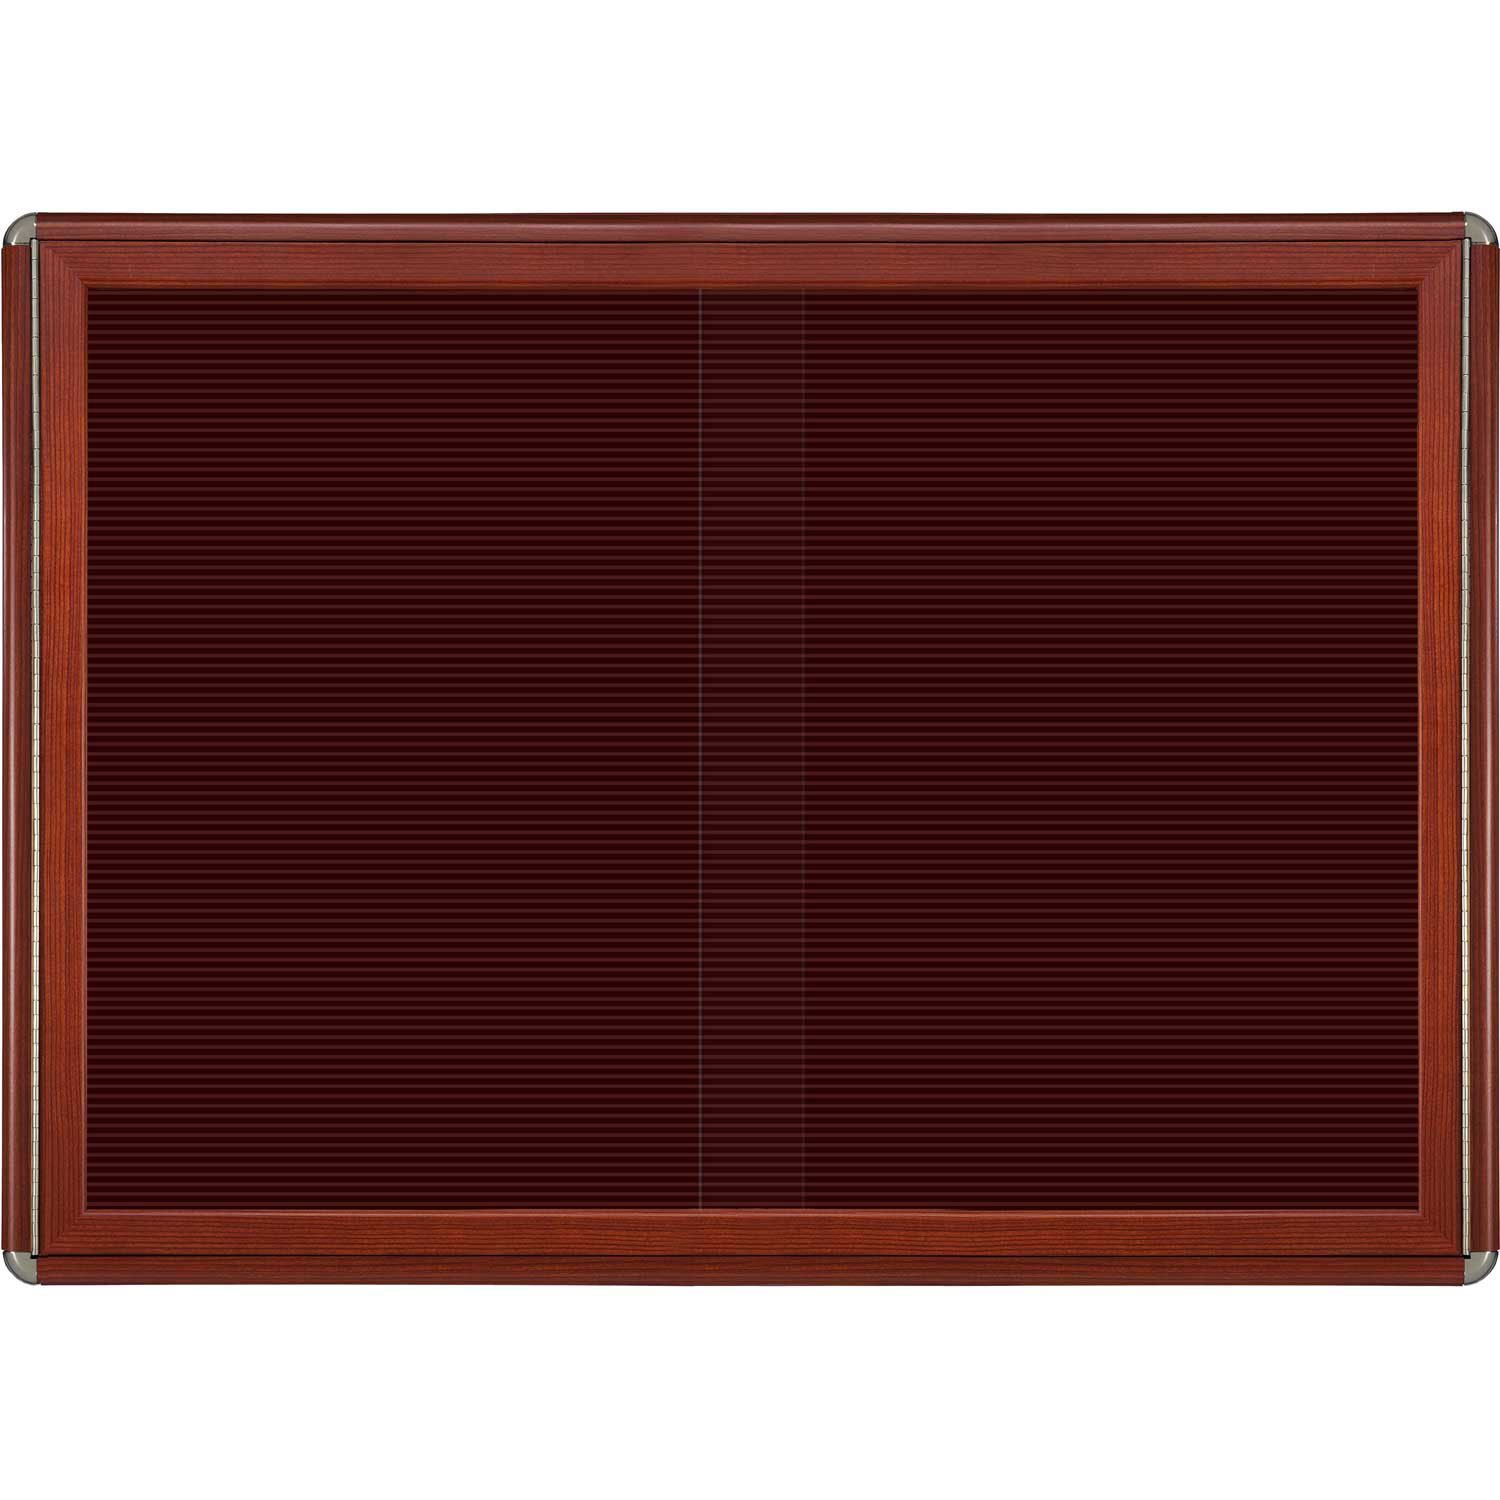 Ovation 2 Sliding Door Wood Look Felt Wall Mounted Letter Board, 3' H x 4' W Surface Color: Burgundy, Color: Chrome, Frame Finish: Cherry